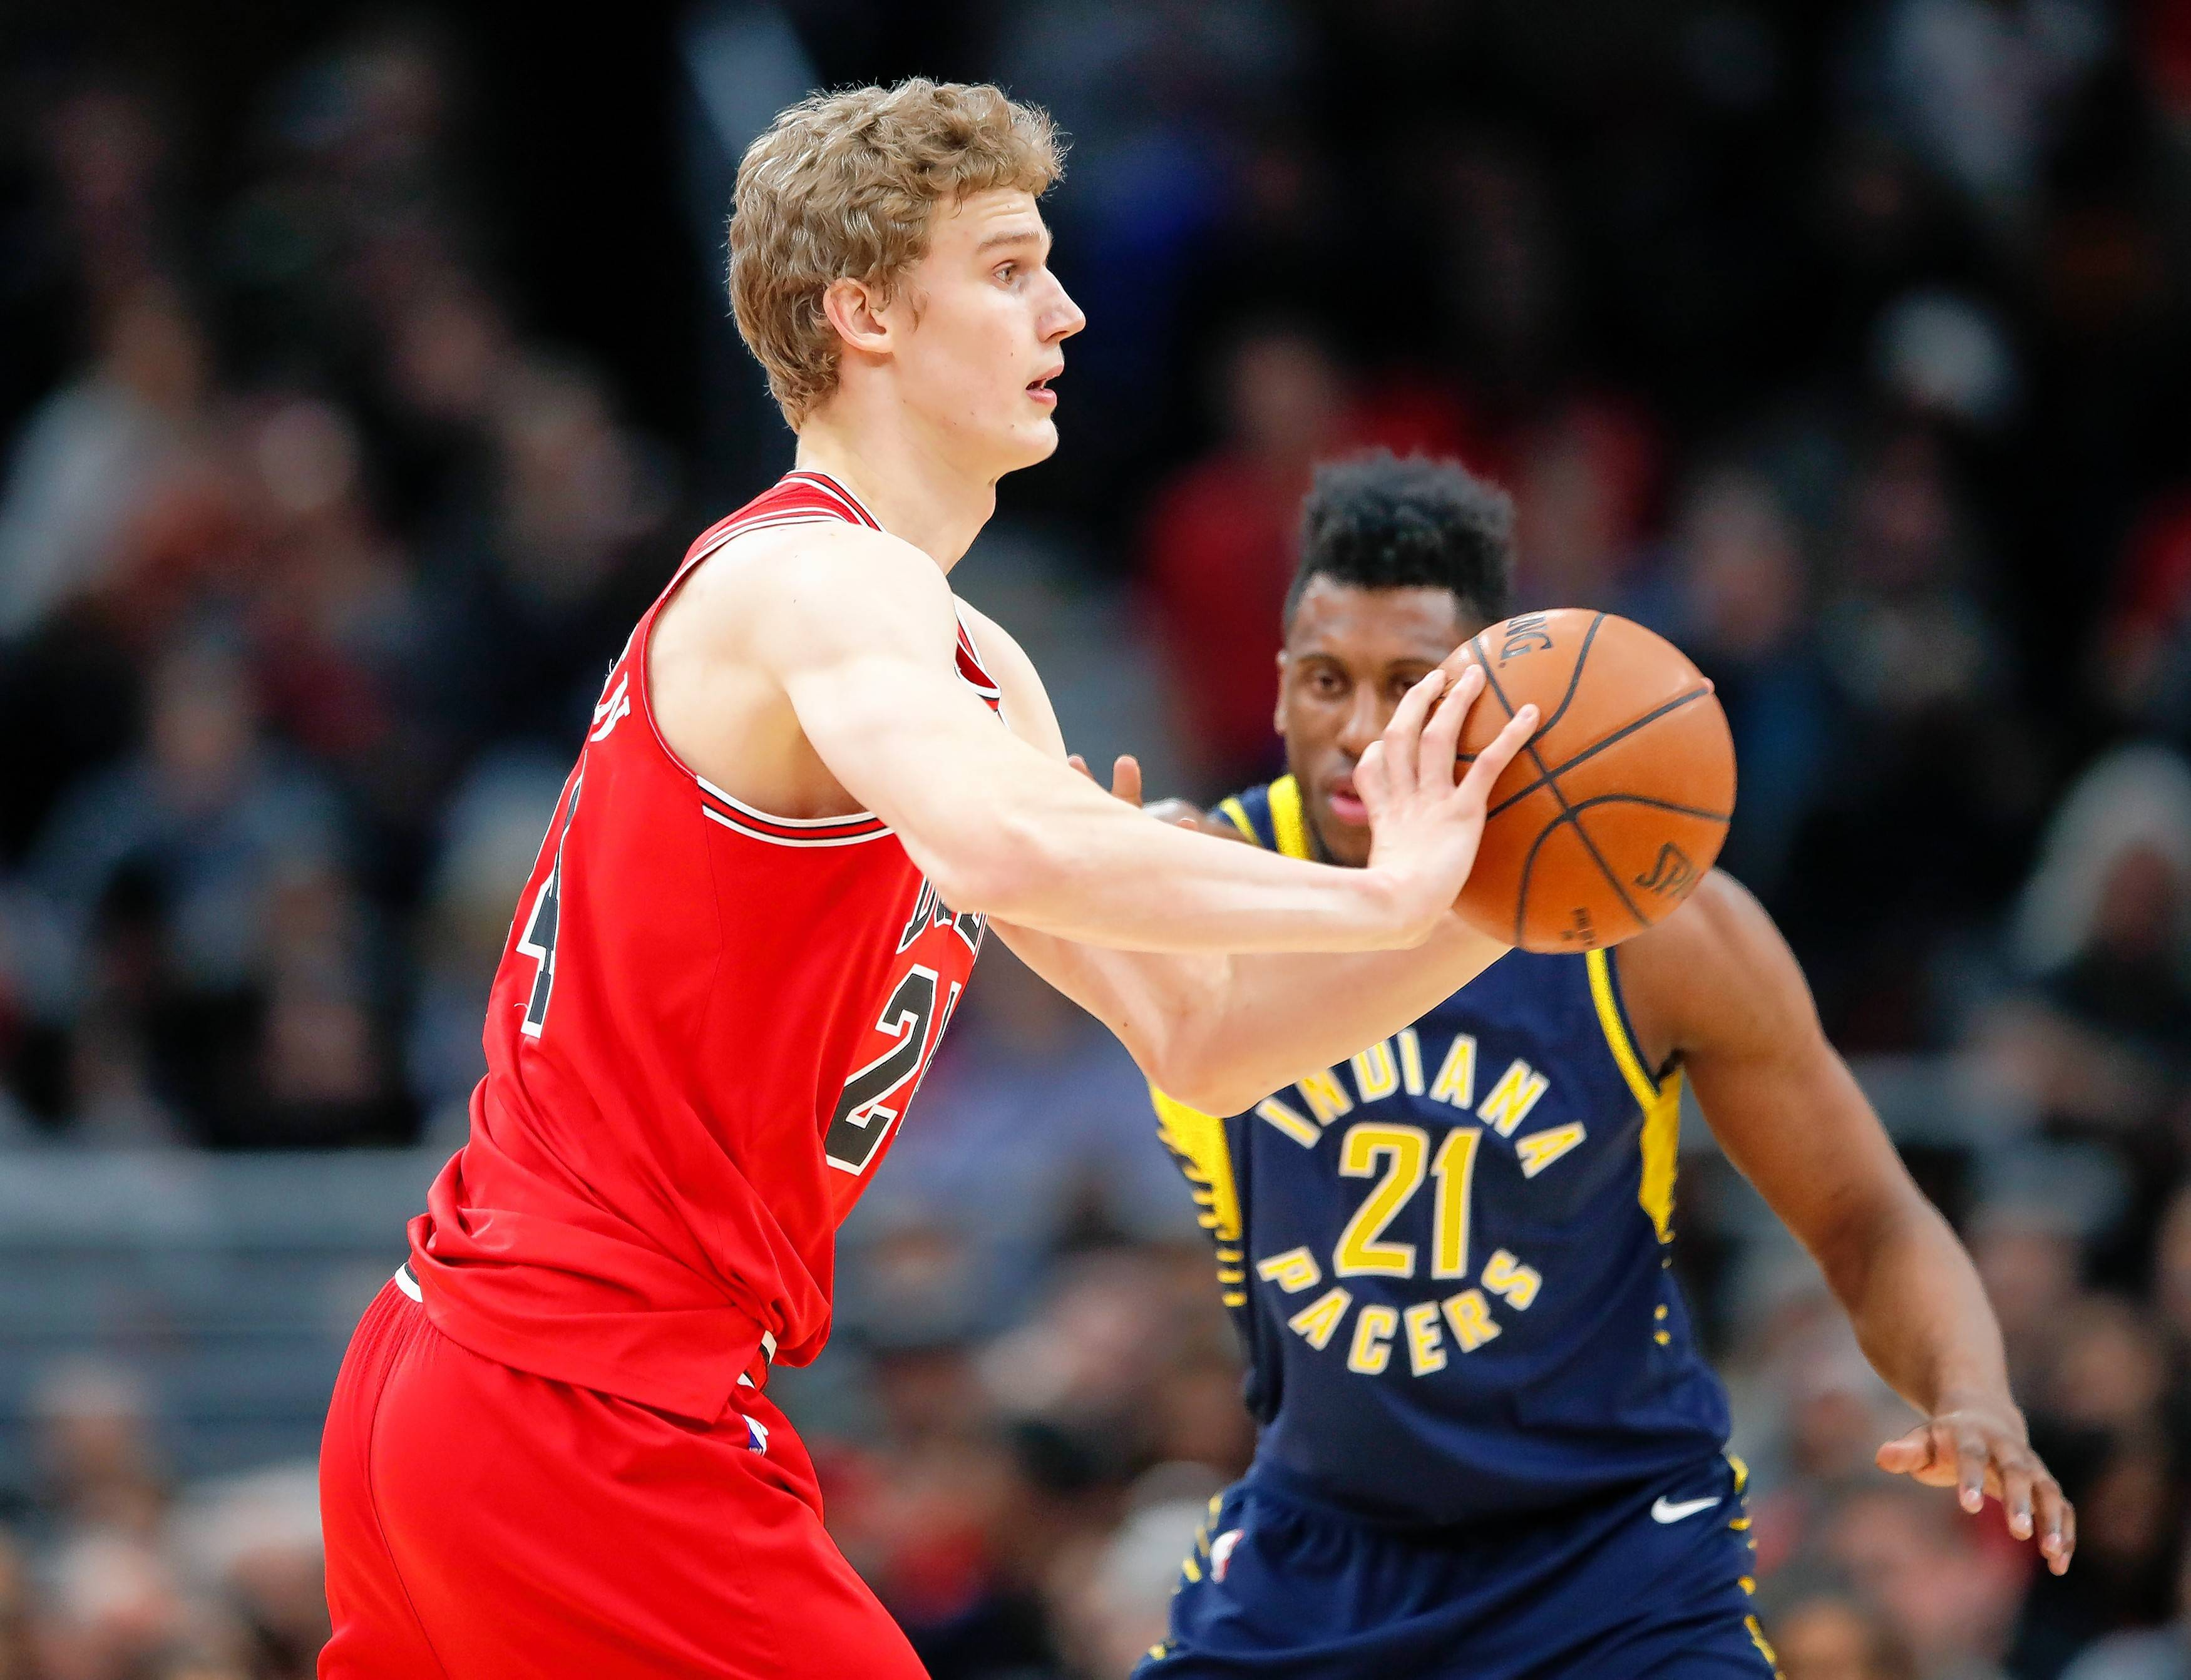 Over his past four games, Chicago Bulls forward Lauri Markkanen Markkanen has averaged 21.0 points, 9.0 rebounds and shot 53 percent from the field.